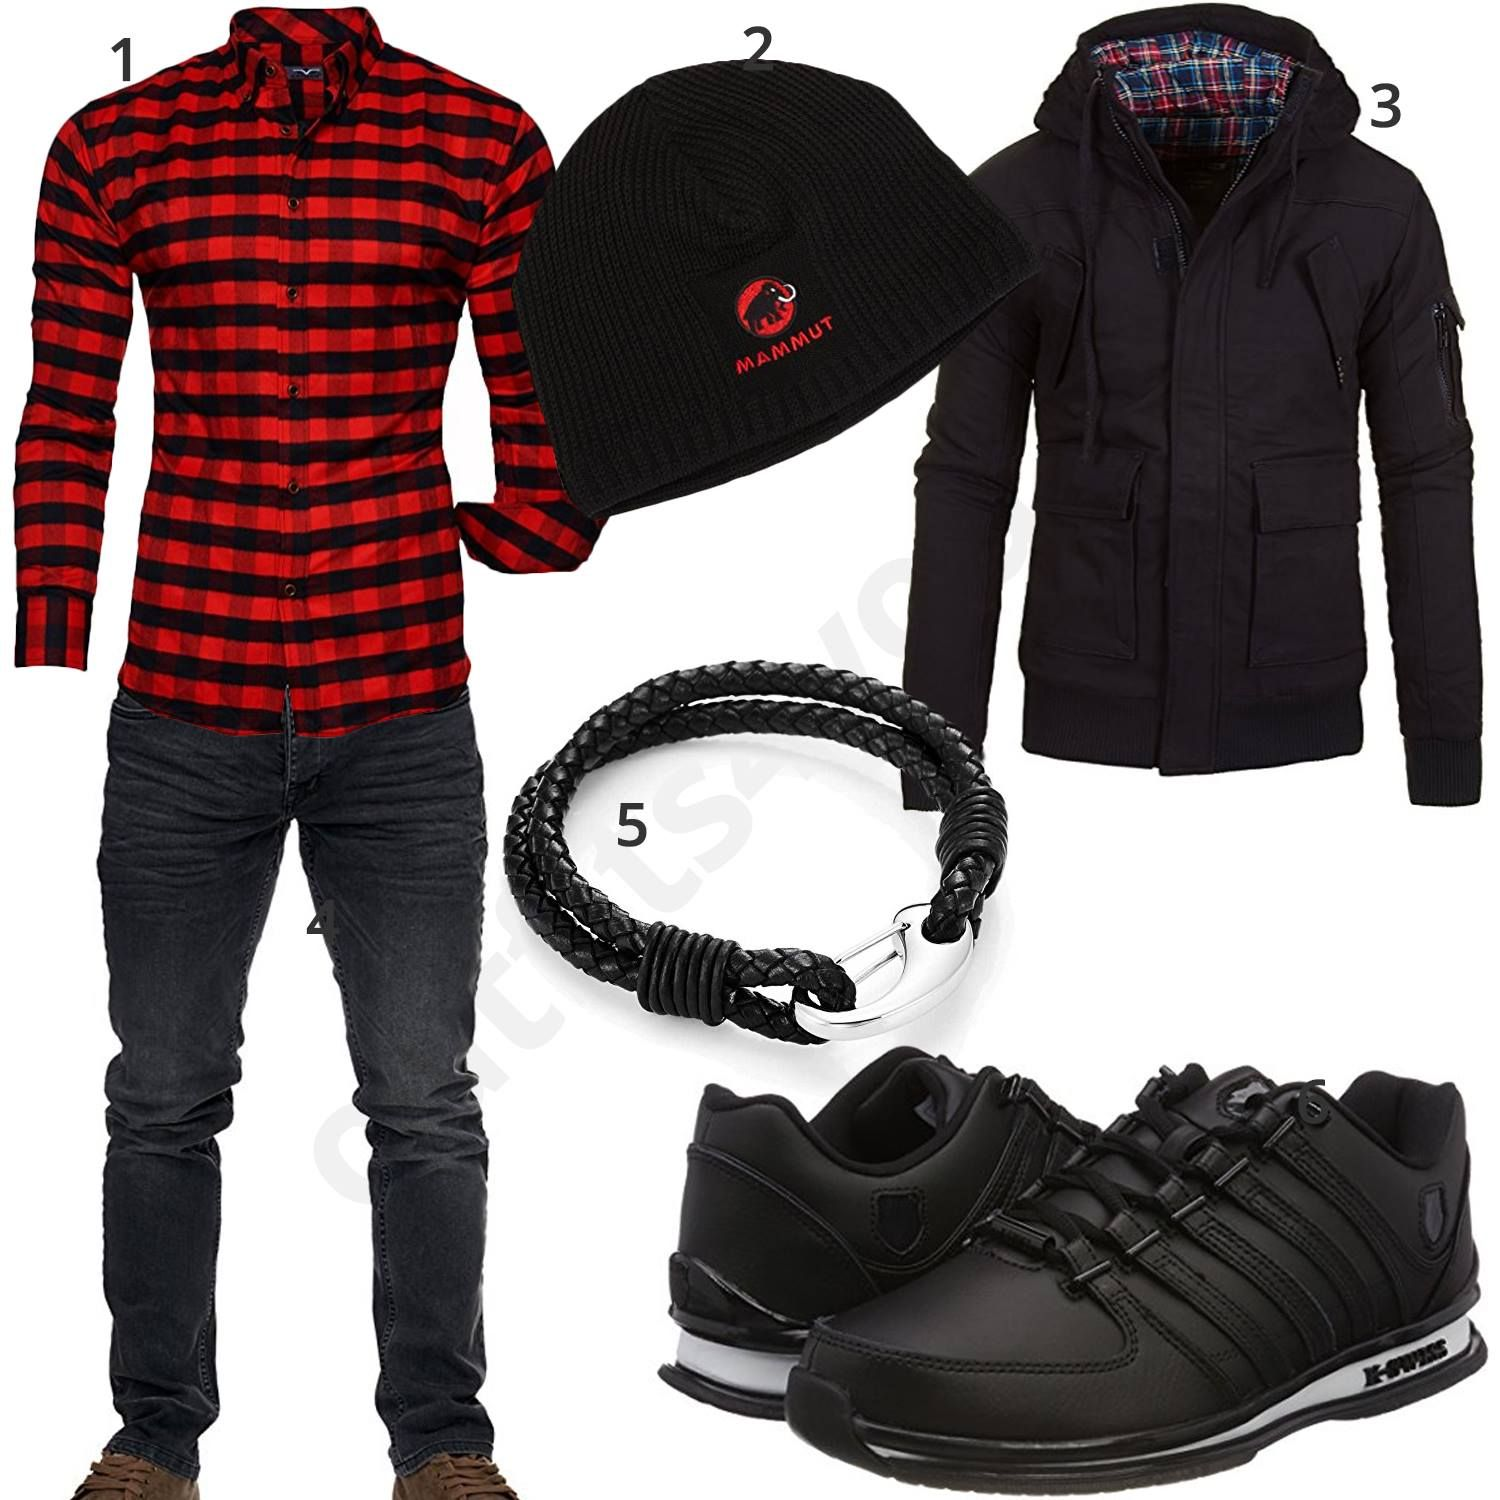 new product 89237 3d4be Schwarz-Rotes Herrenoutfit mit Hemd, Jacke und Jeans   Moda ...